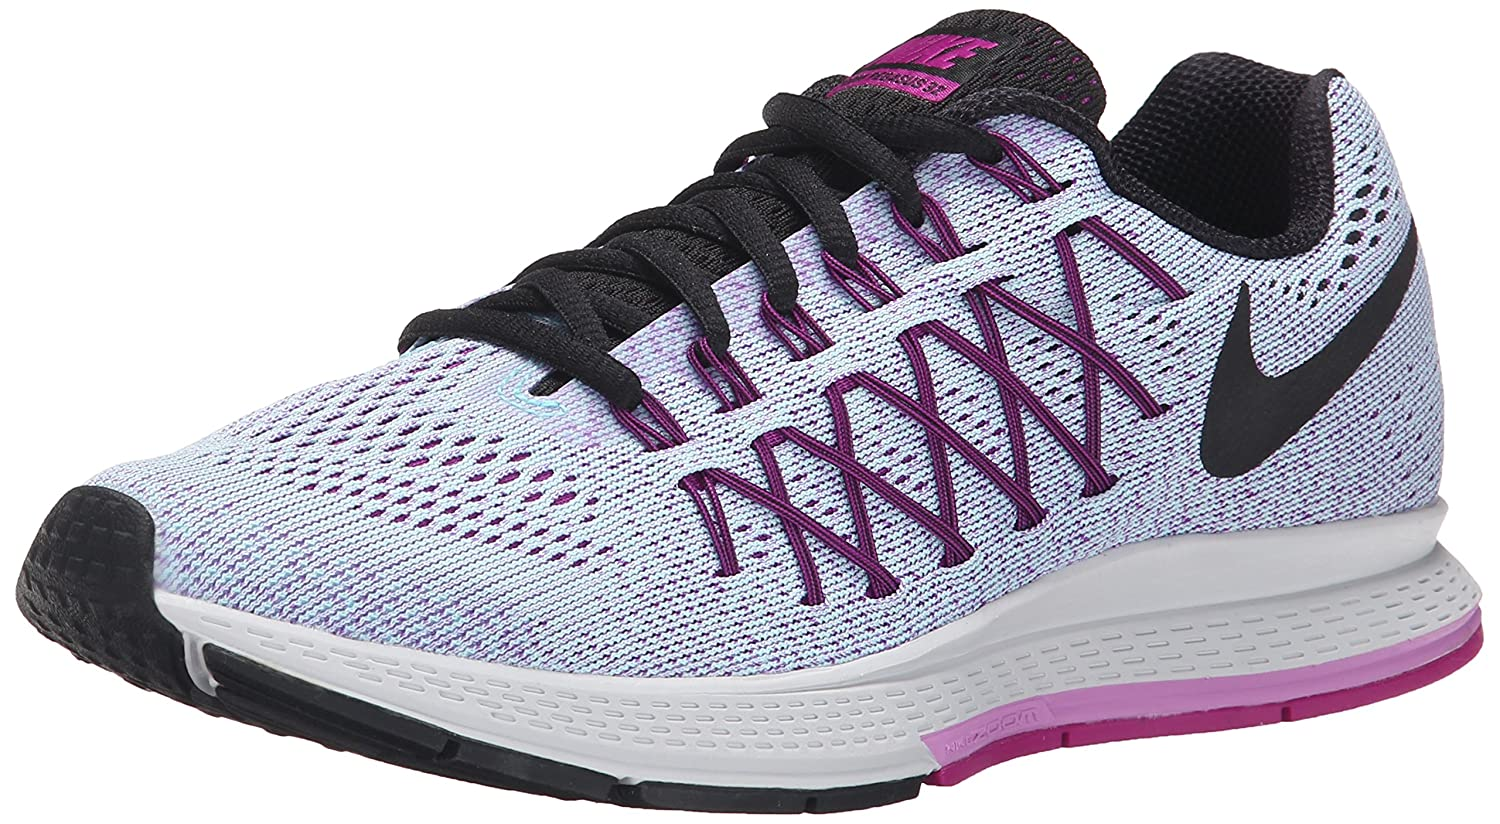 NIKE Women's Air Zoom Pegasus 32 Running Shoe B00V42PFU8 5.5 B(M) US|Copa/Black/Fuchsia Glow